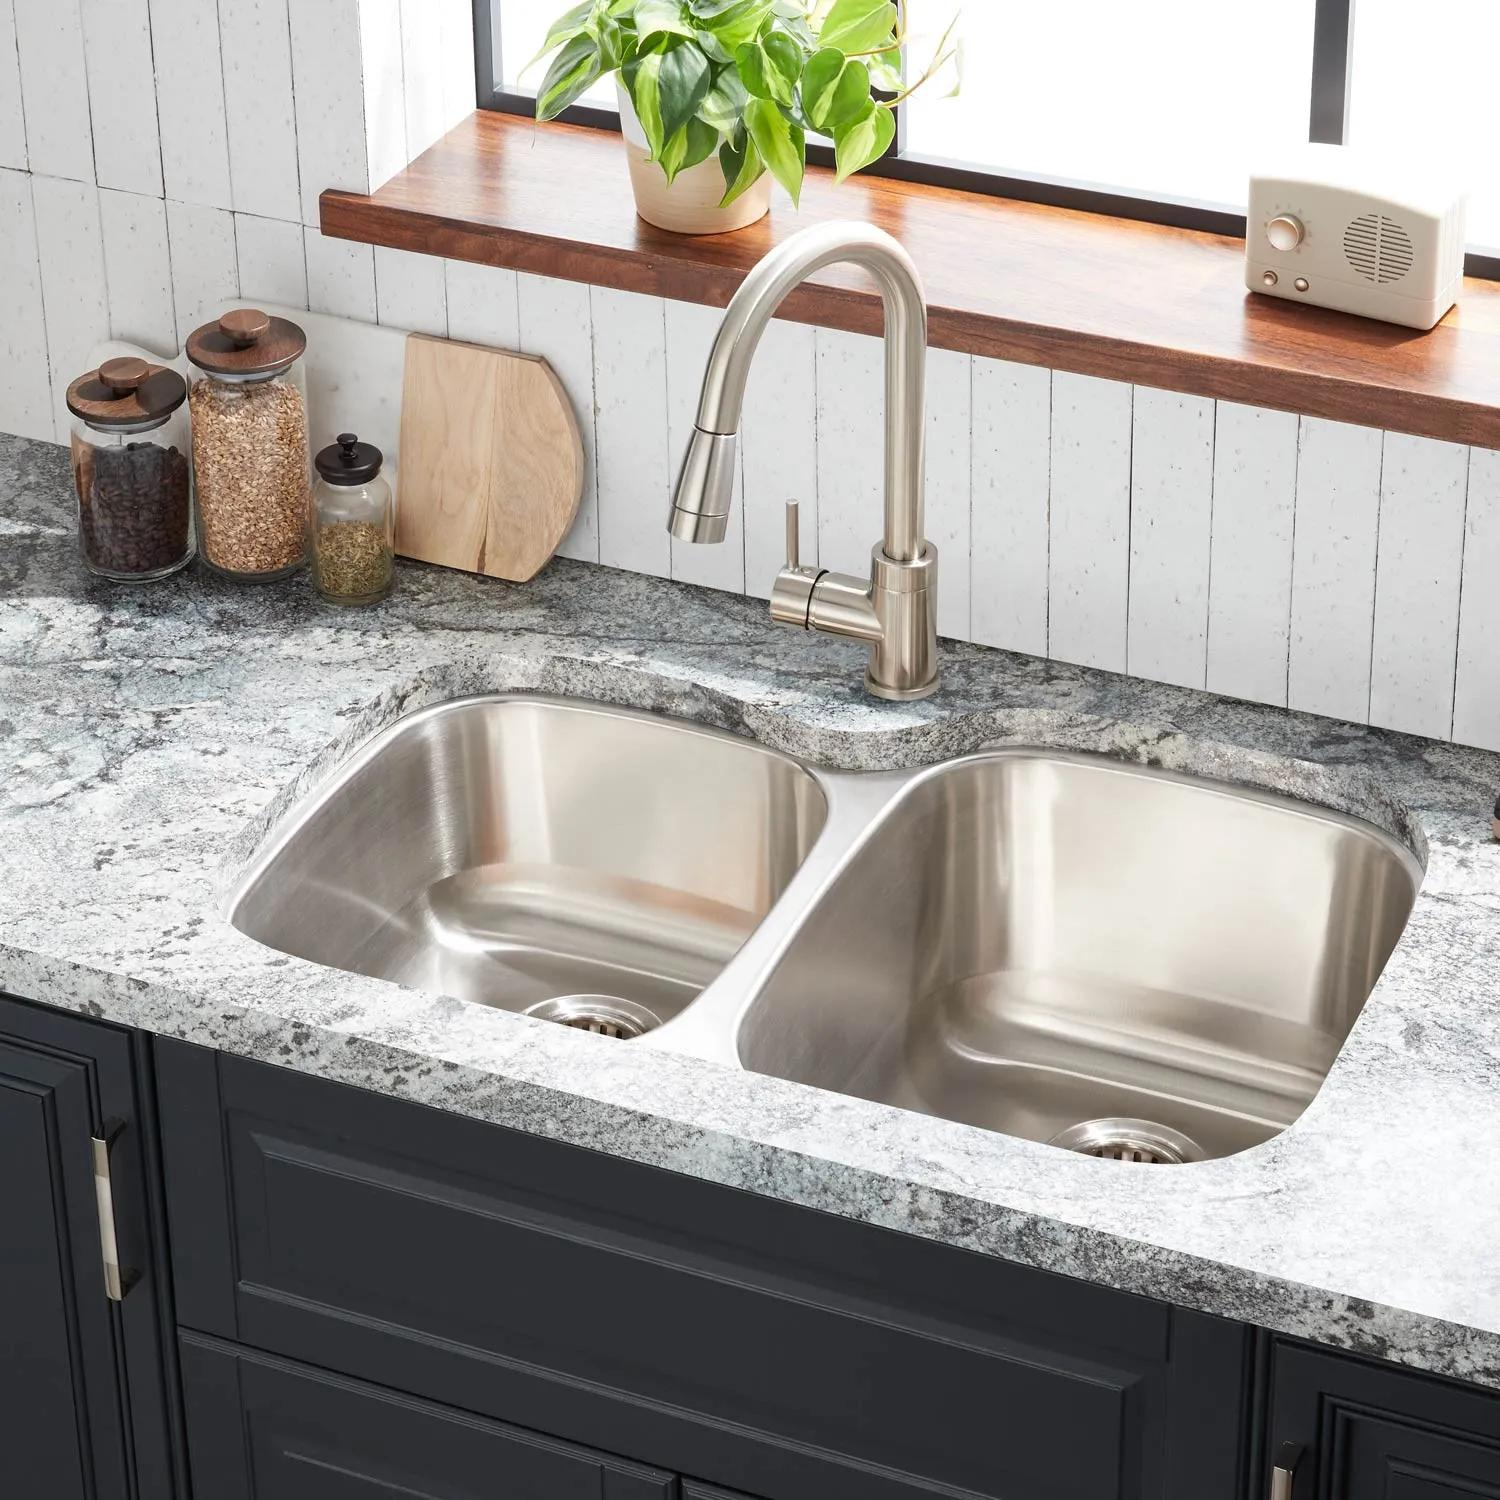 32 Calverton Offset Double Bowl Stainless Steel Undermount Sink Large Bowl Right Kitchen